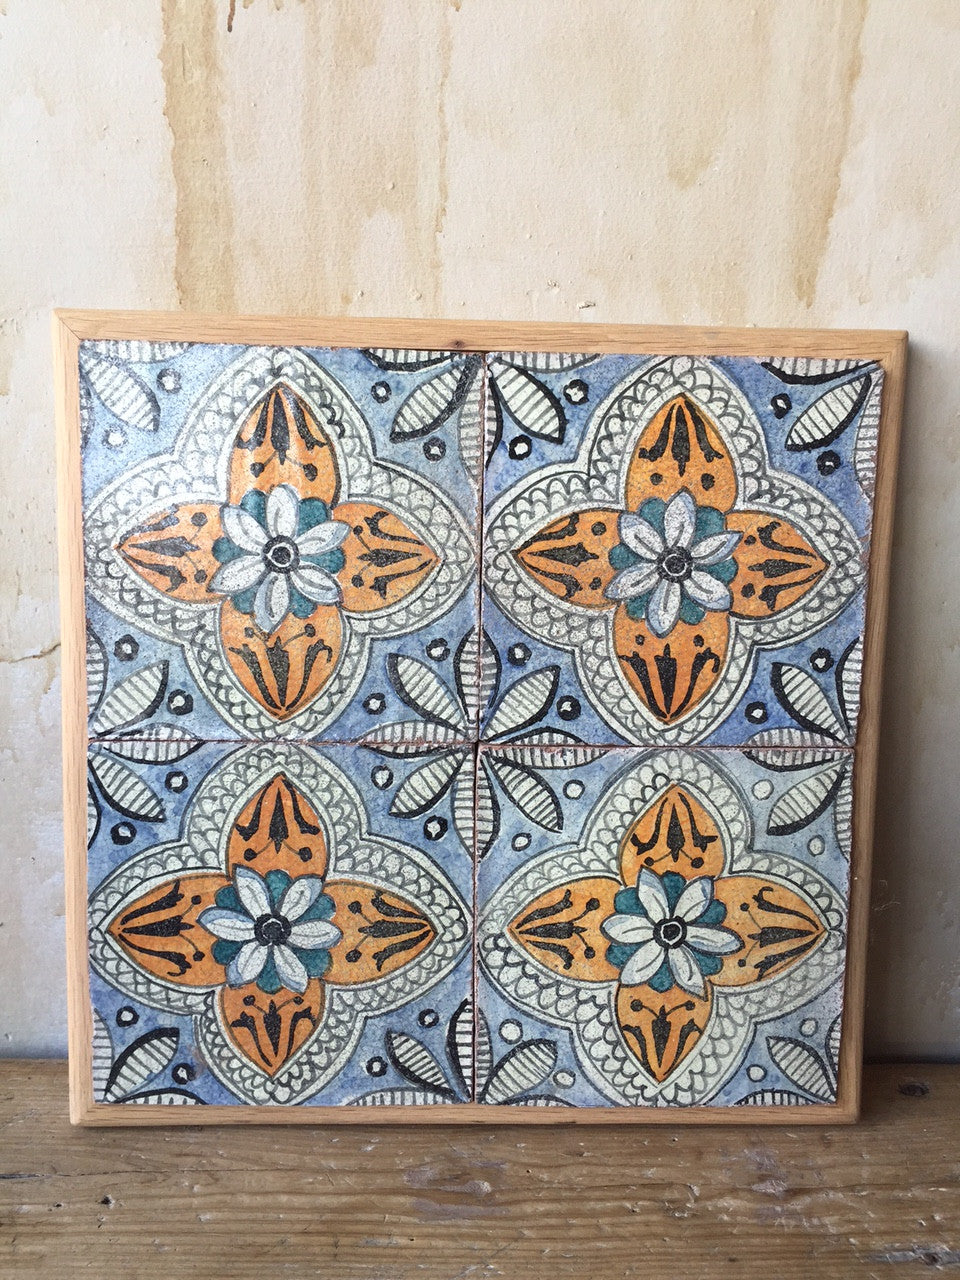 Antique Italian Tiles 18th Century